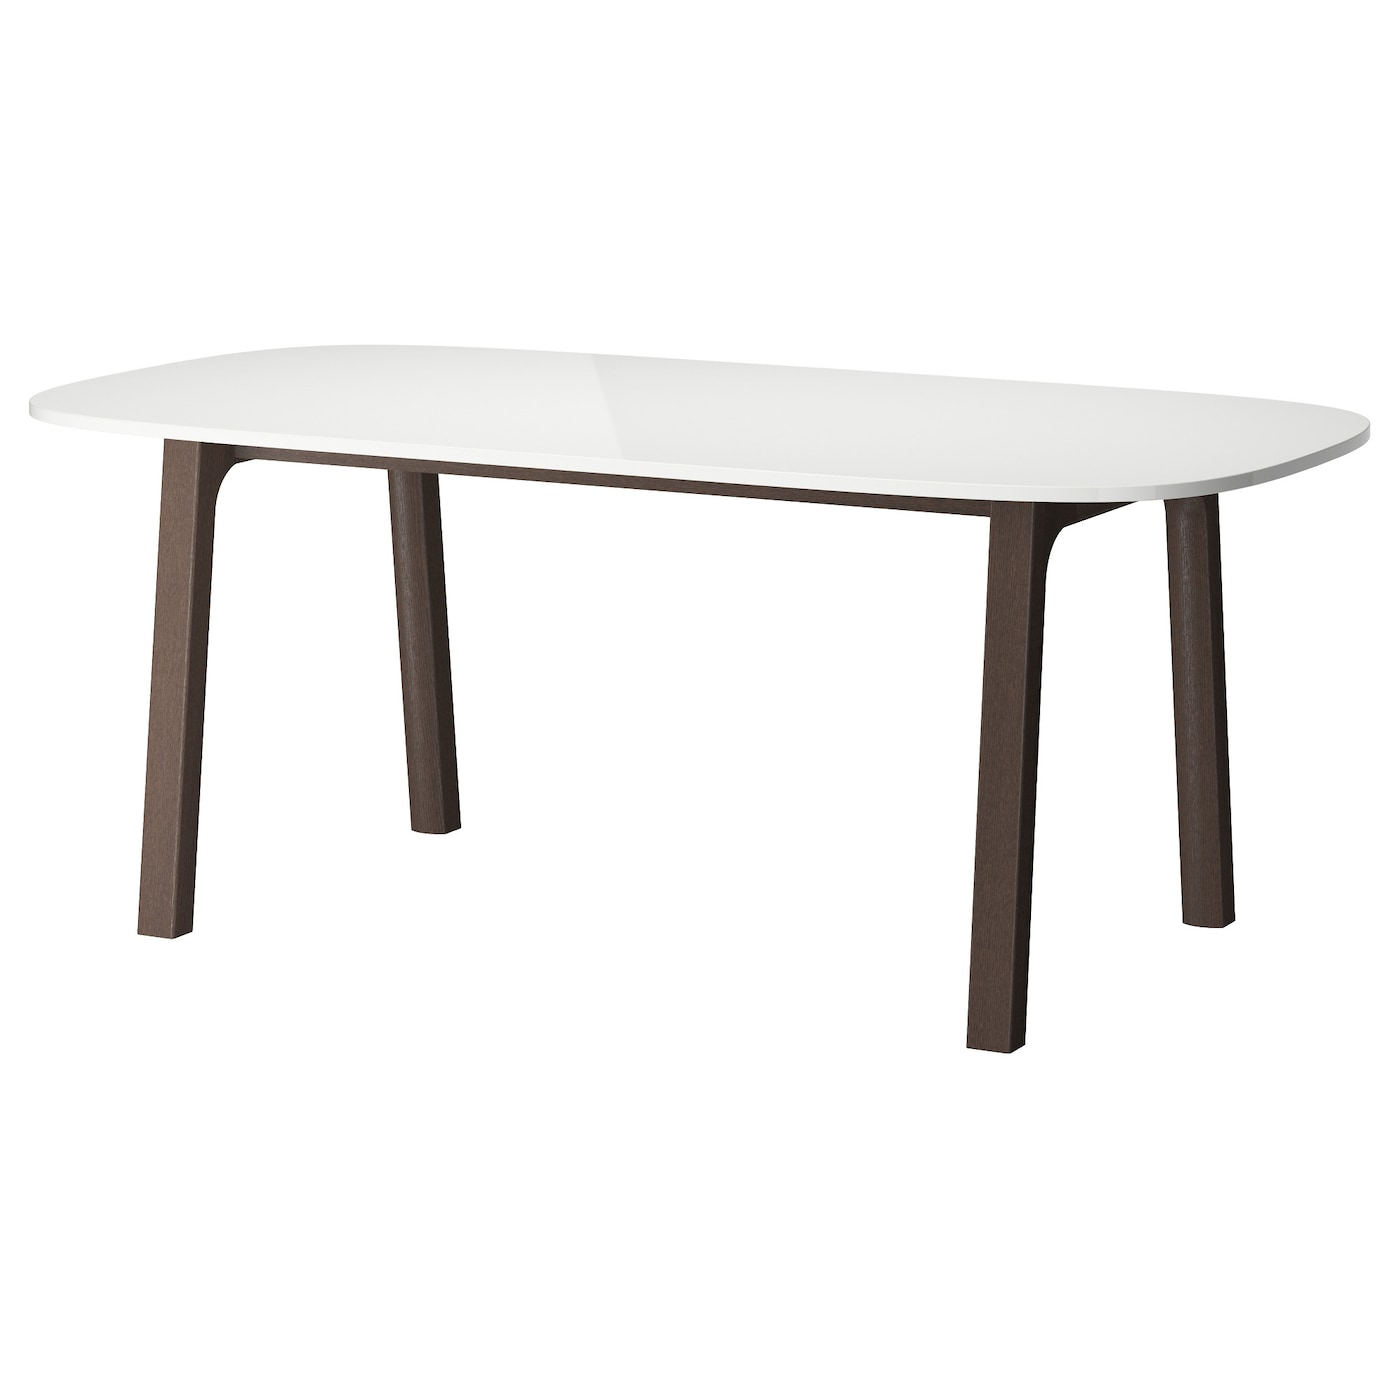 Oppeby table white v stan dark brown 185x90 cm ikea - Table basse escamotable ikea ...